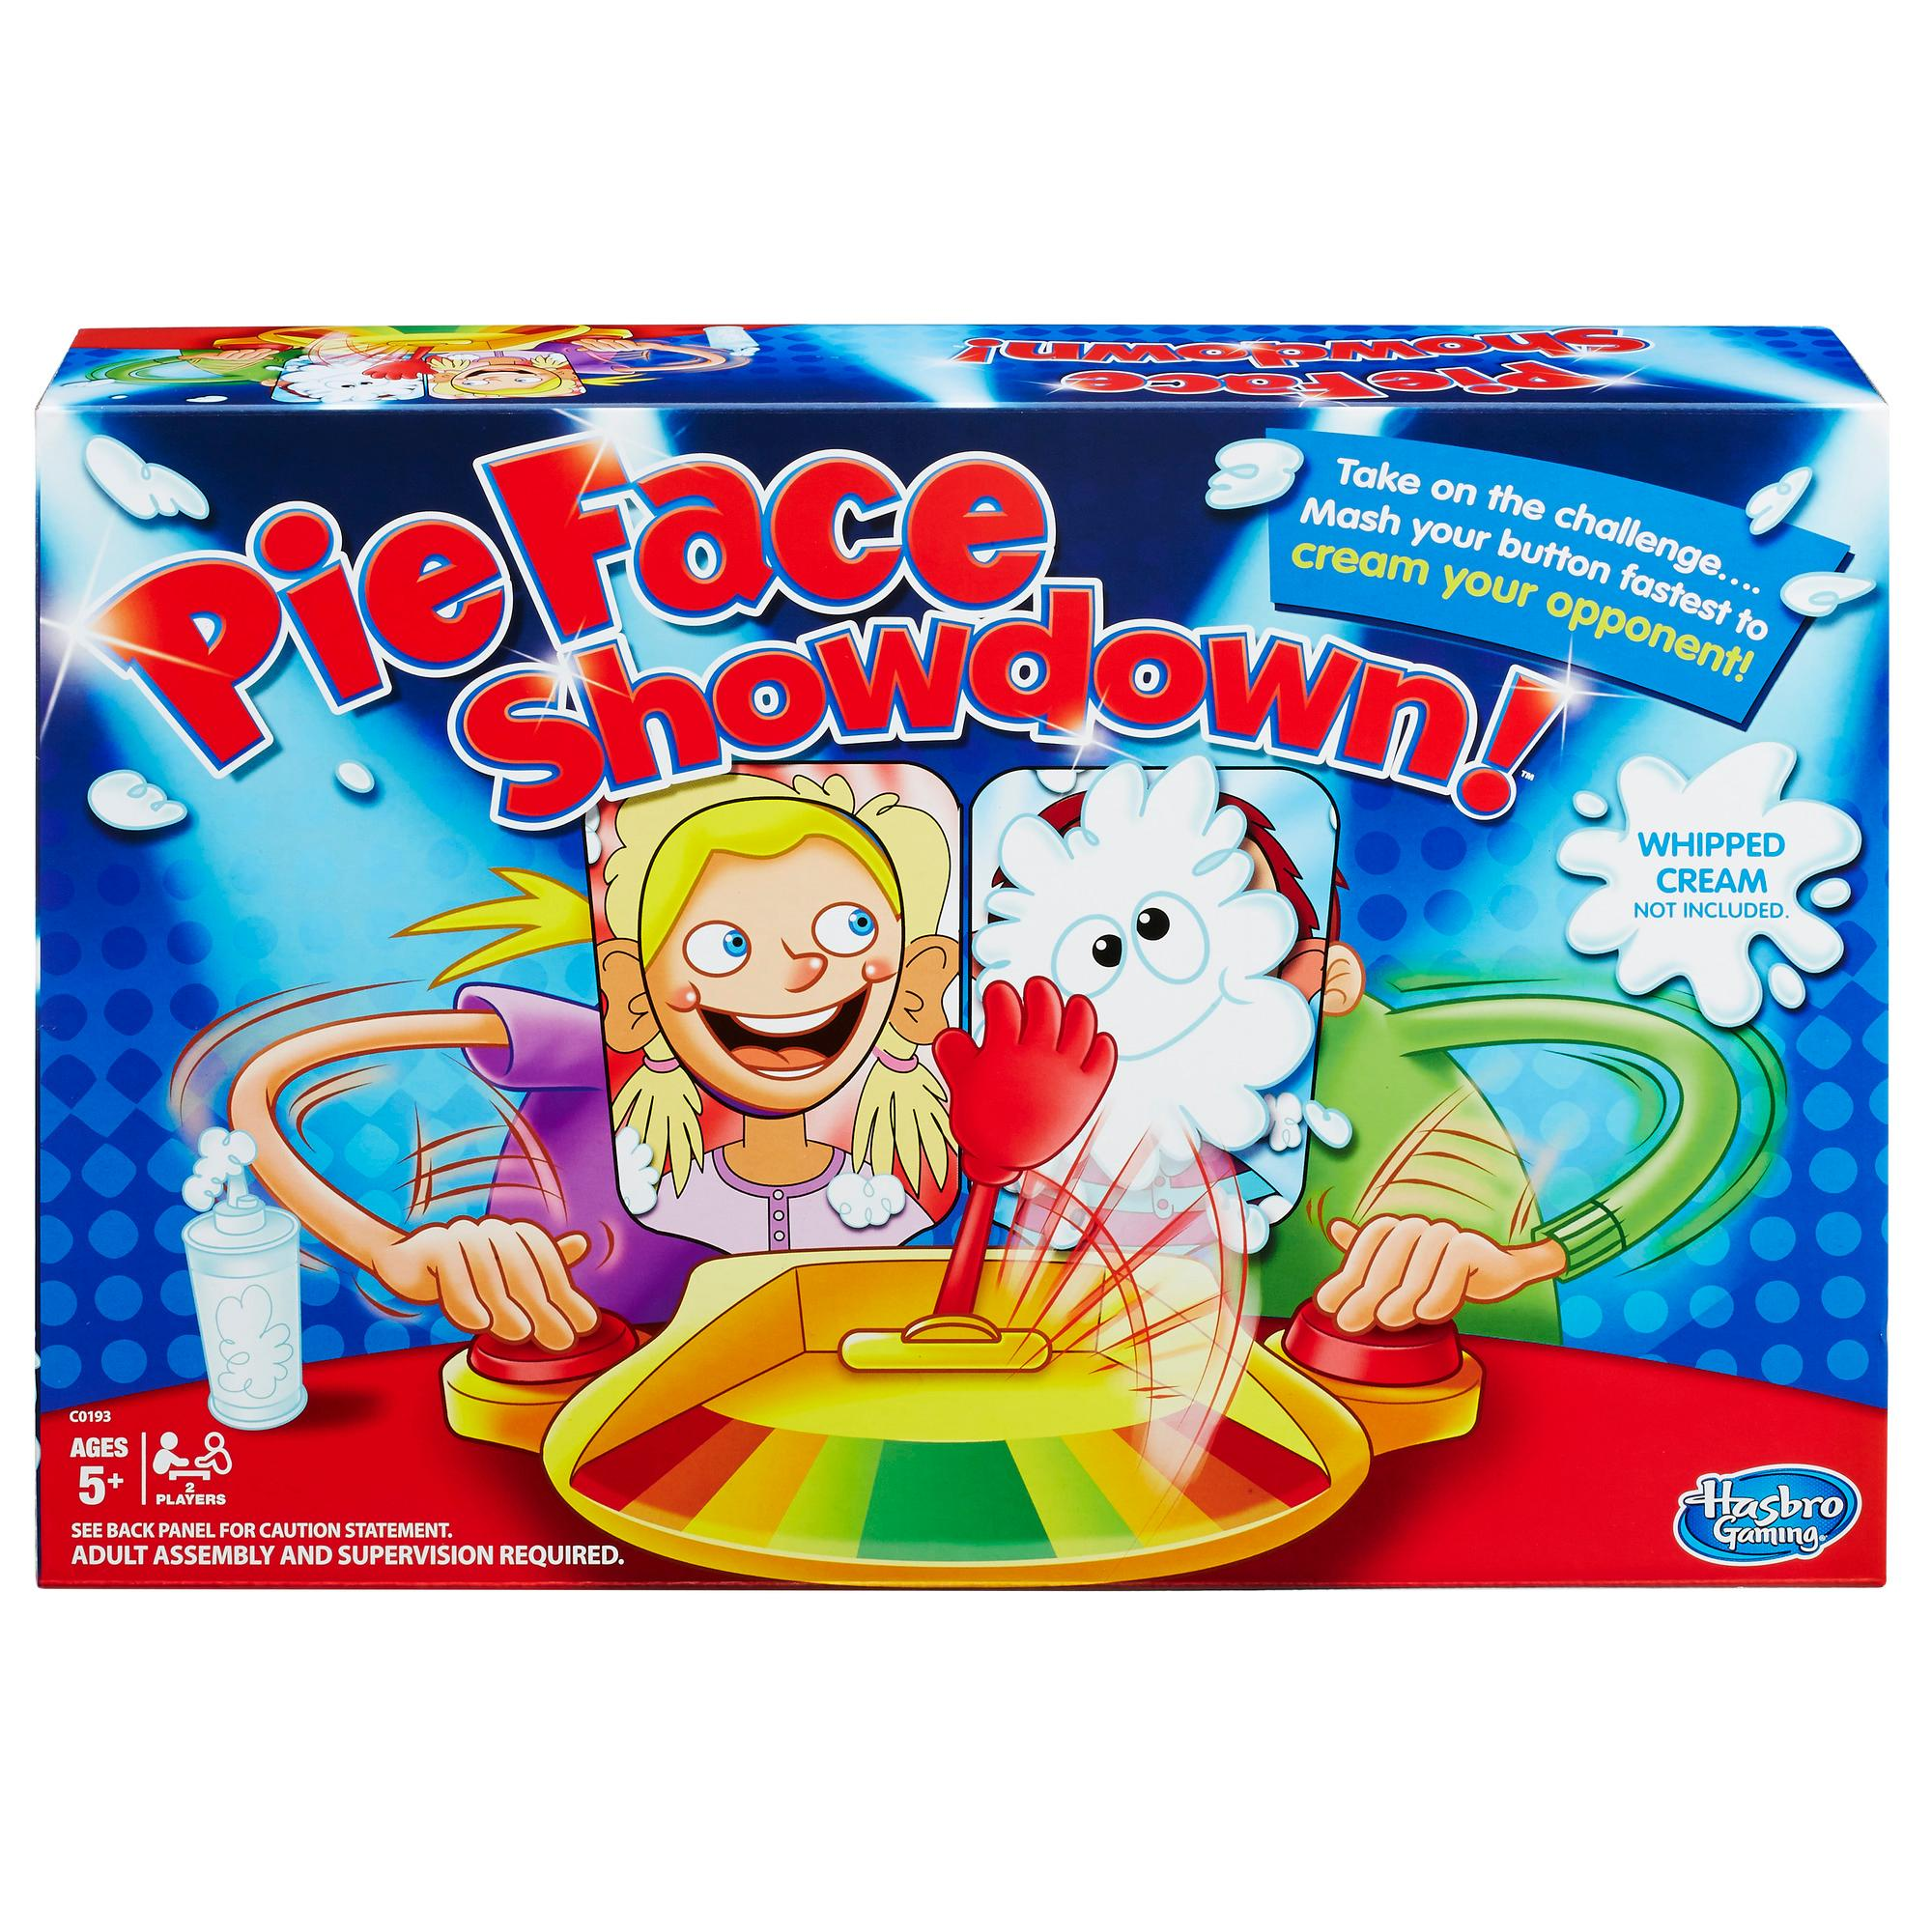 pie face showdown instructions